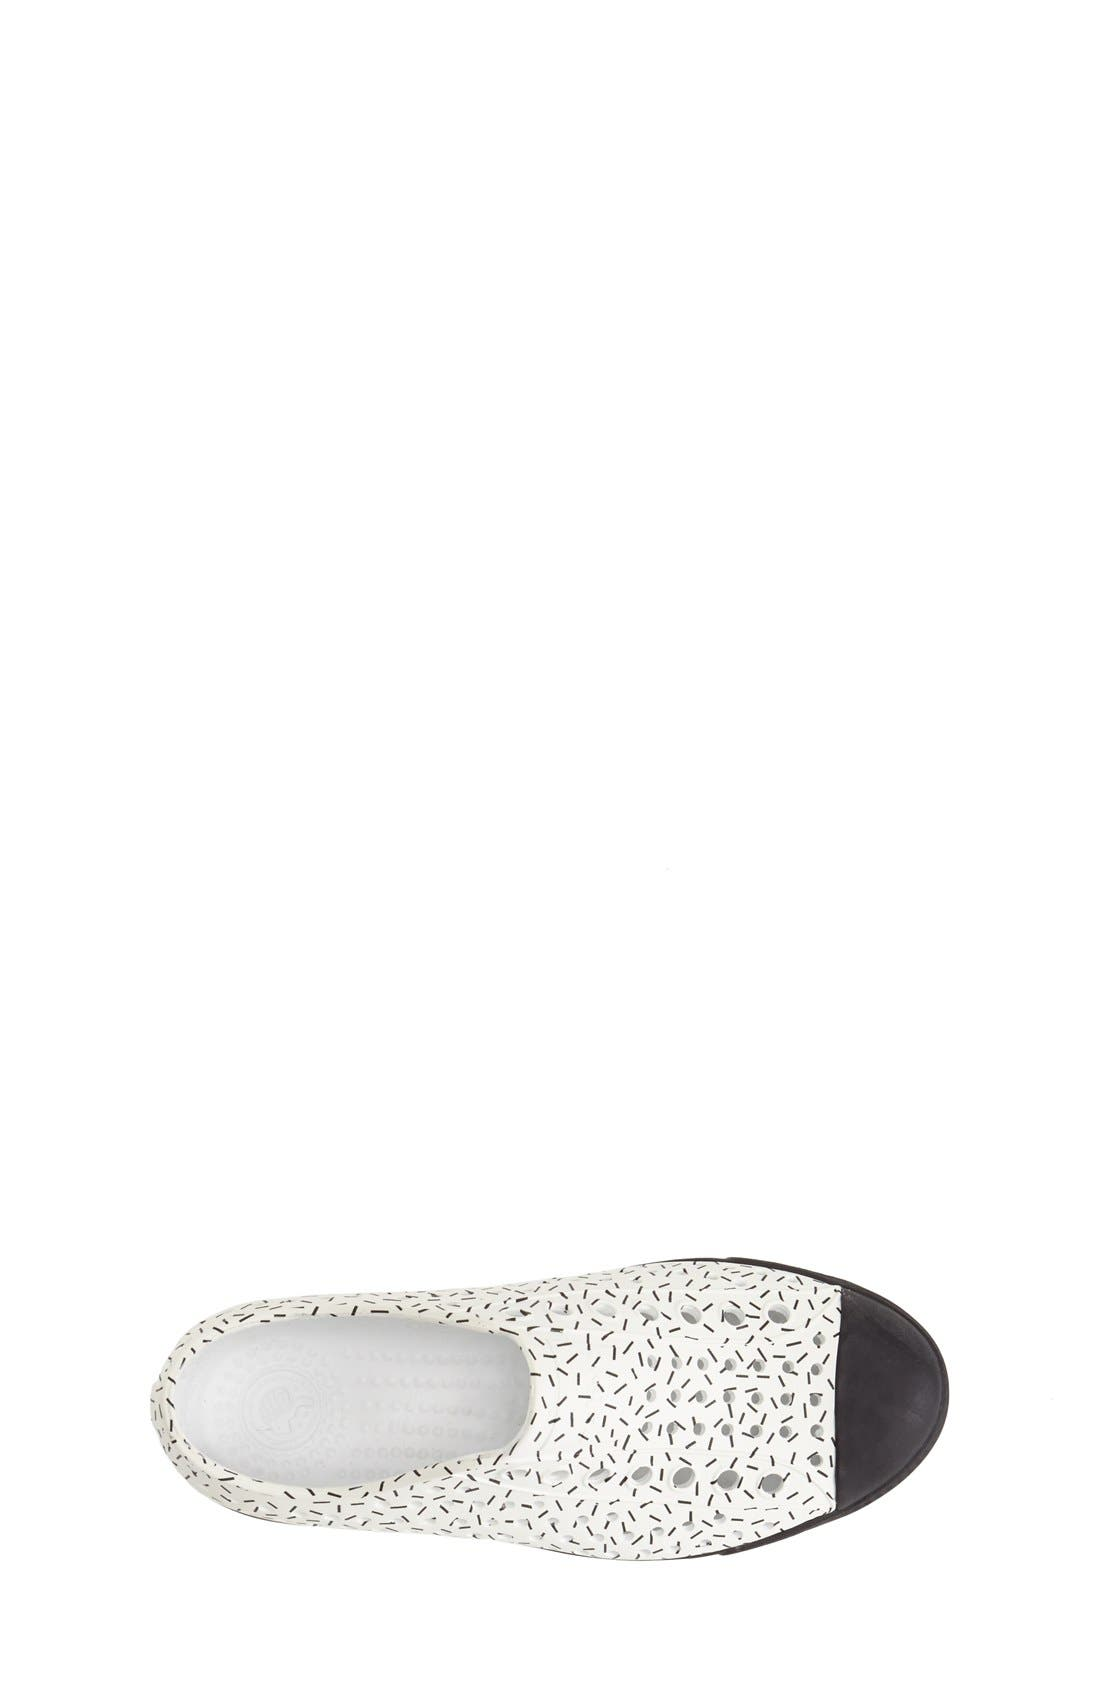 'Jefferson' Printed Slip-On Sneaker,                             Alternate thumbnail 9, color,